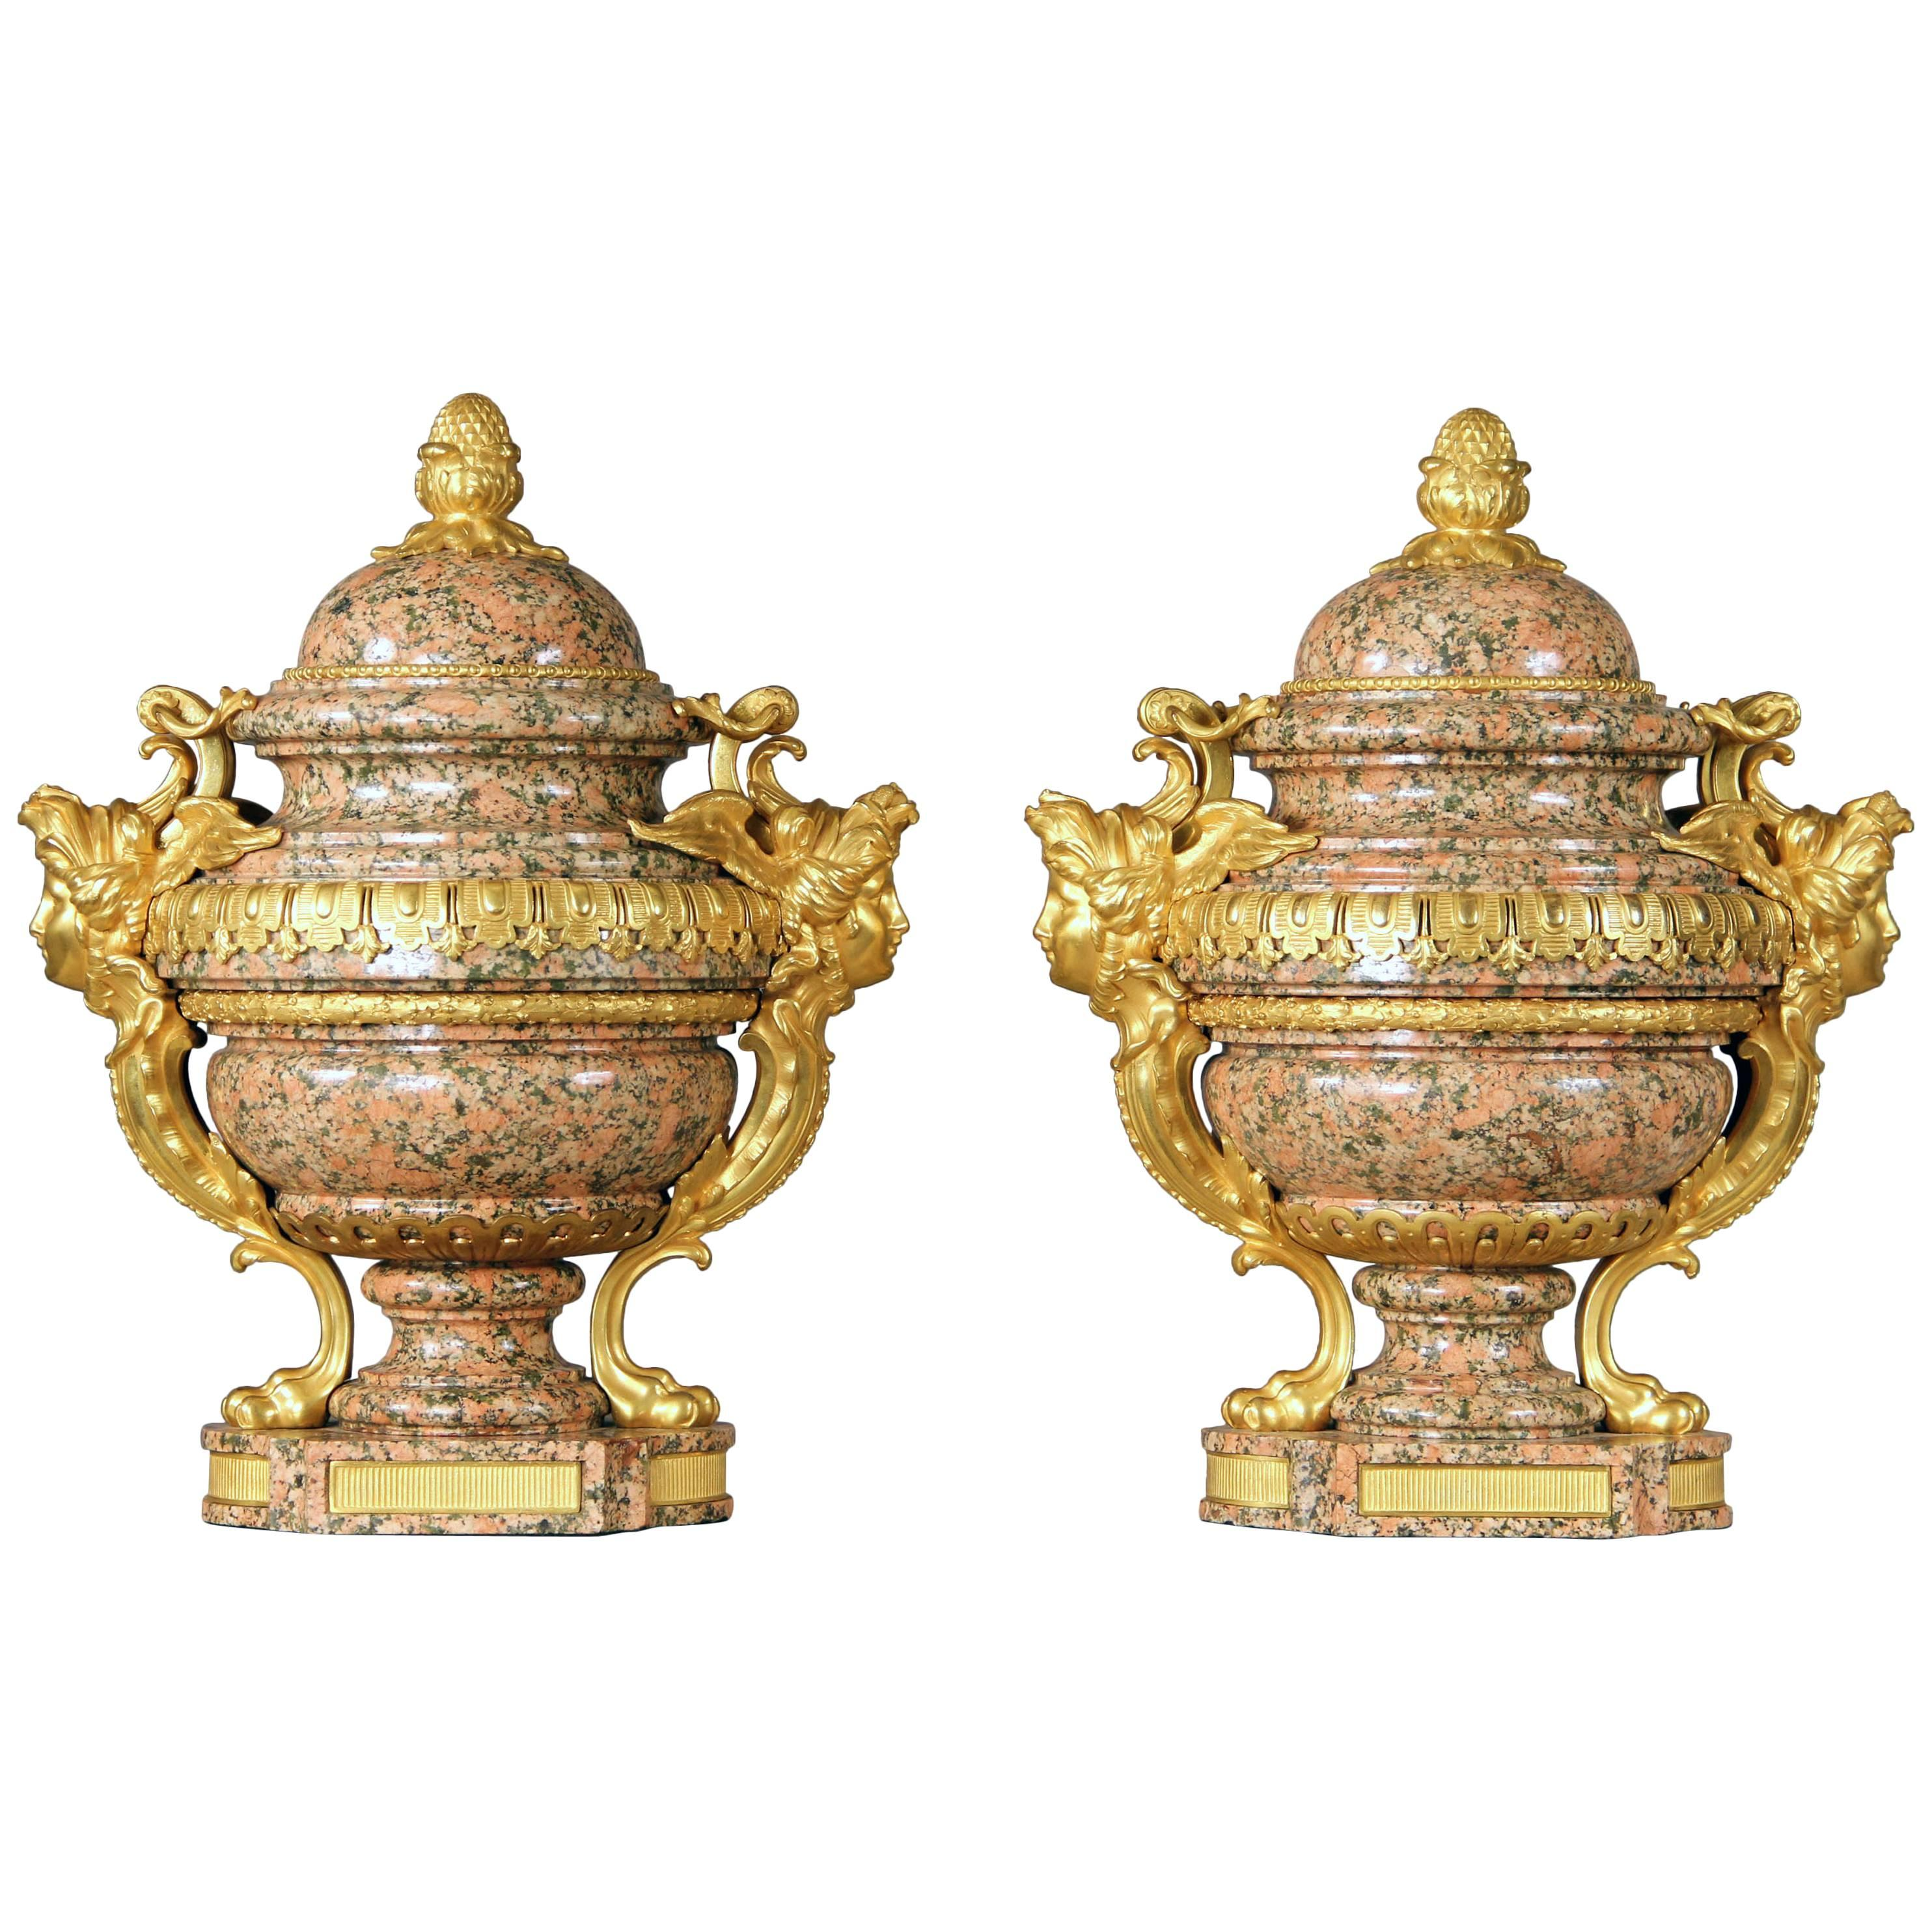 Pair of Late 19th-Early 20th Century French Bronze-Mounted Pink Granite Urns